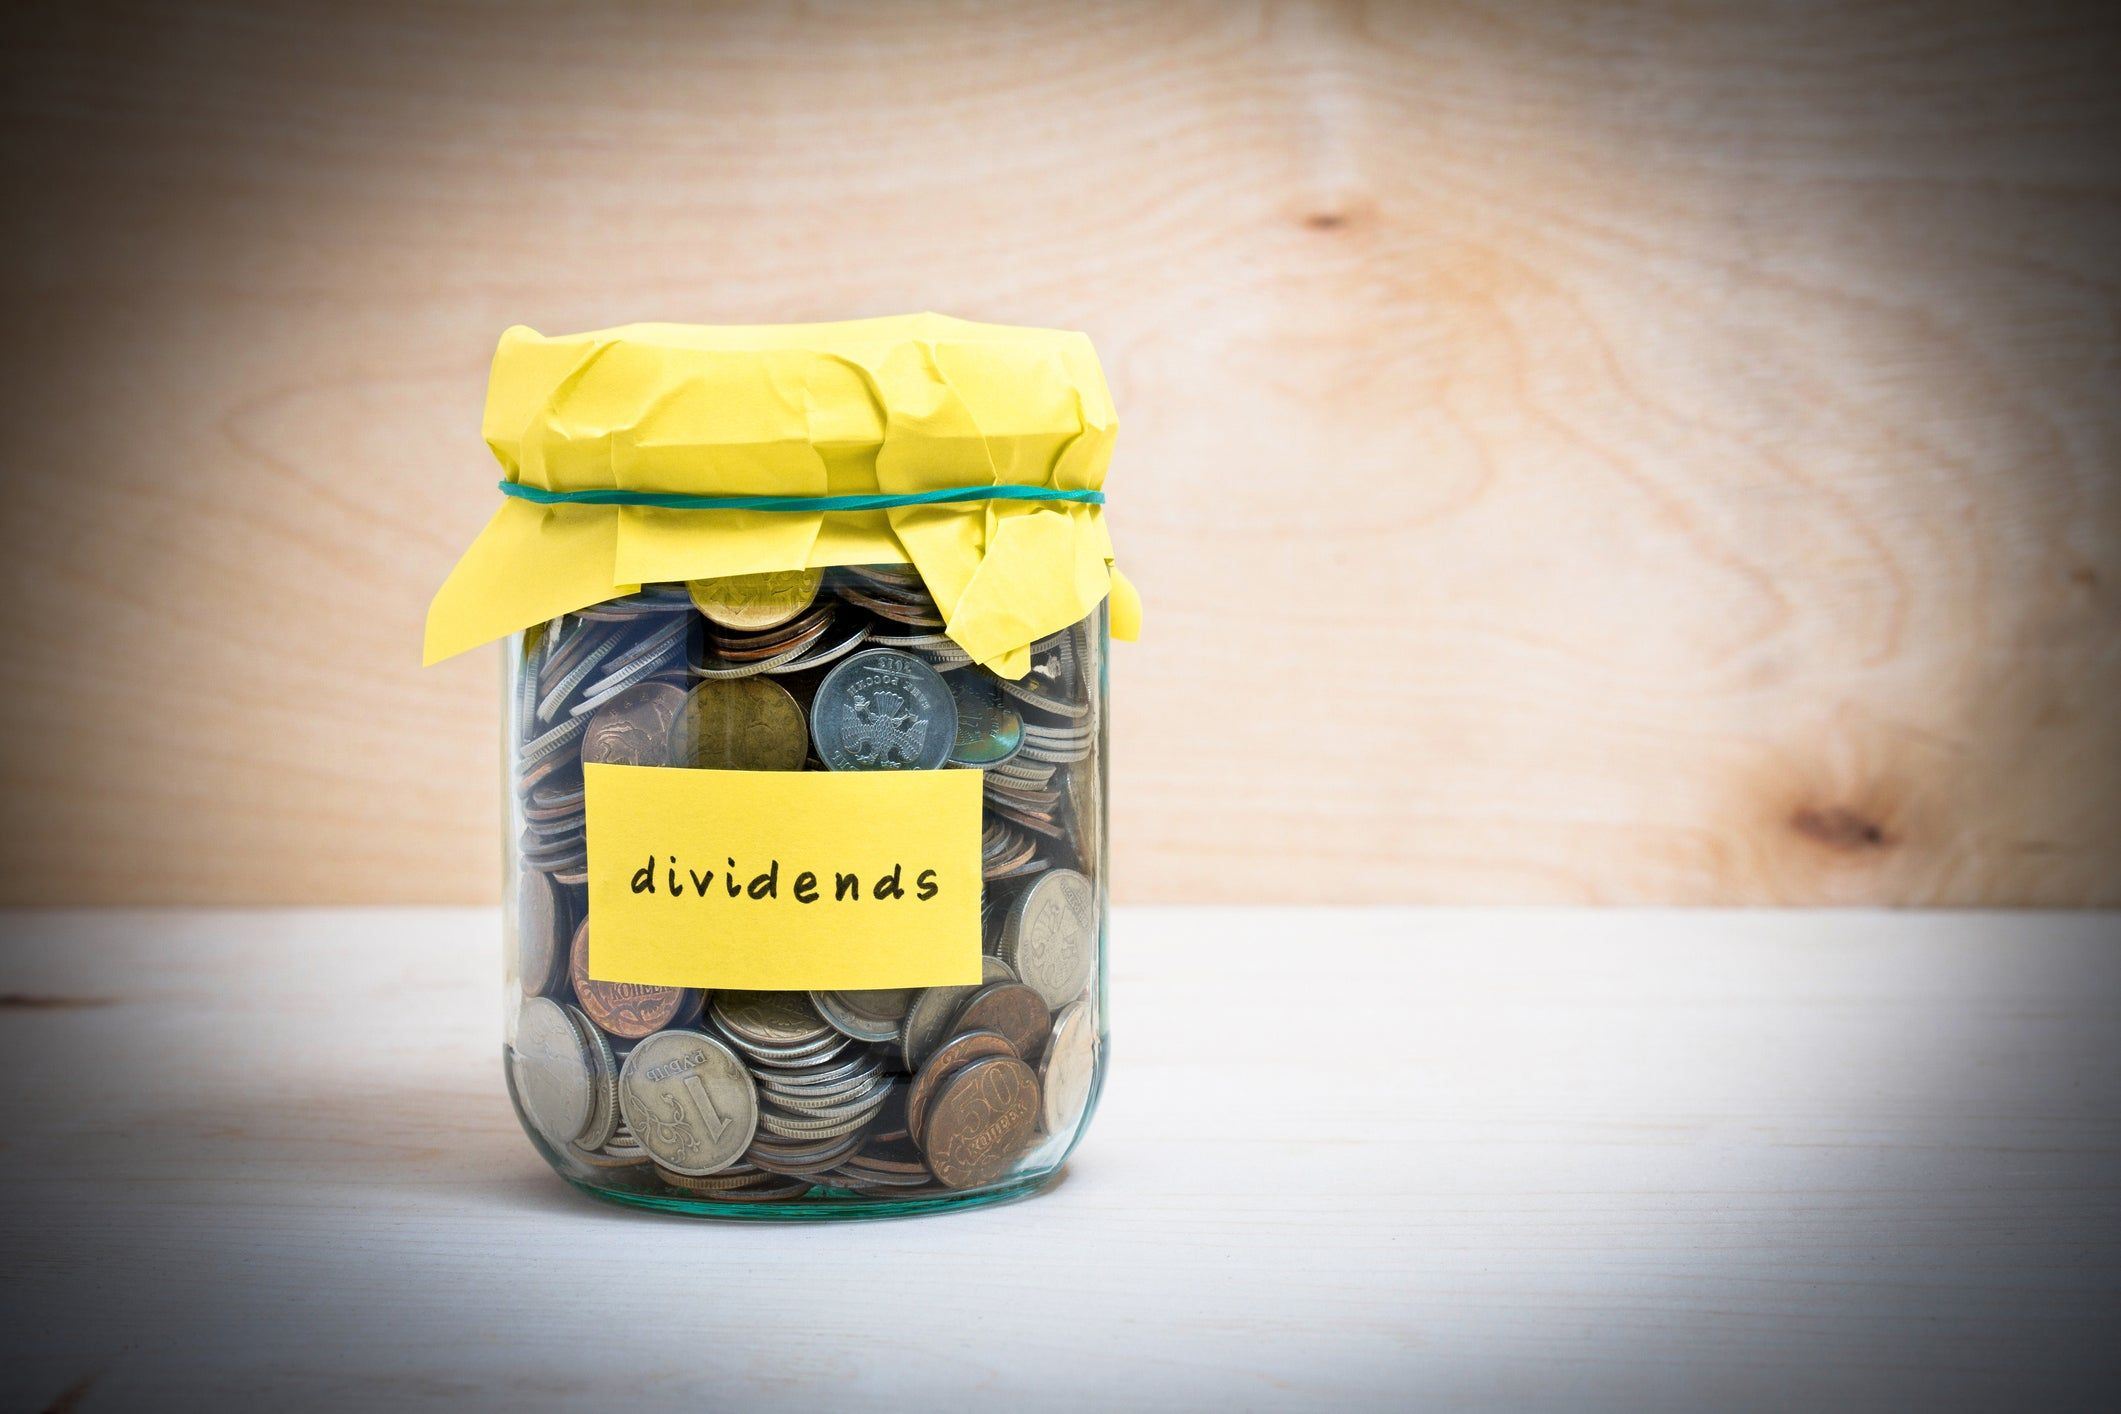 Best dividend stocks to buy hold in 2020 in 2020